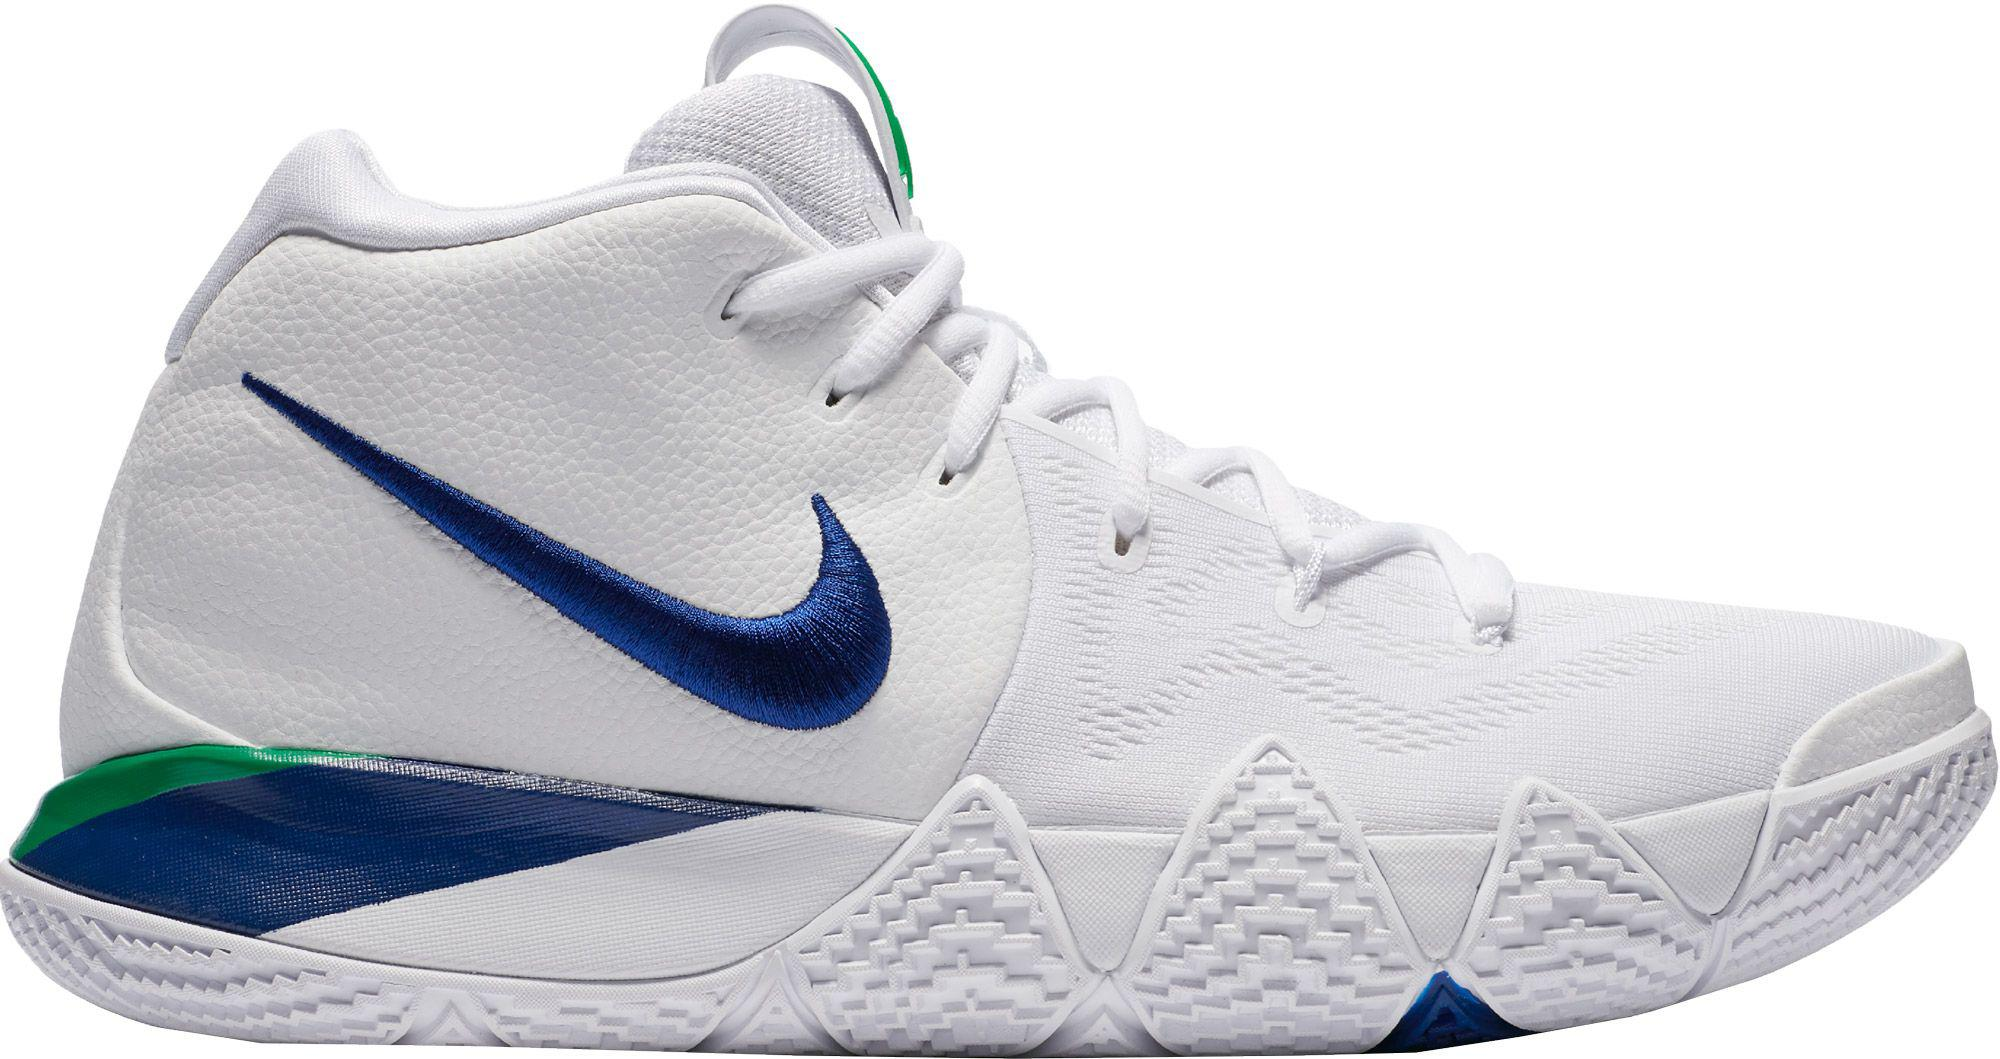 info for 93d47 bd6c0 Nike - Multicolor Kyrie 4 Basketball Shoes for Men - Lyst